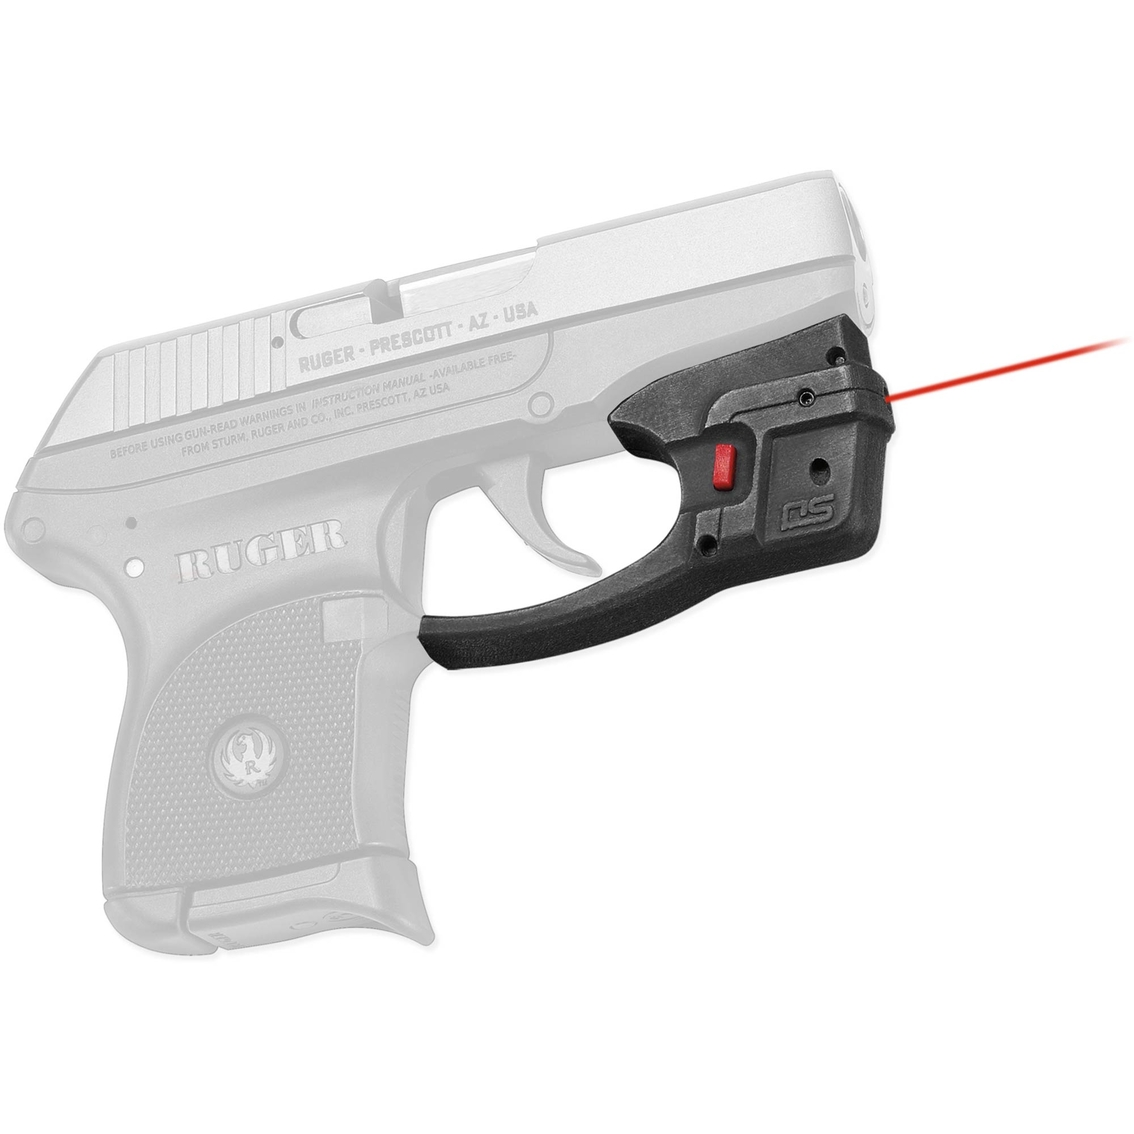 Crimson Trace Corporation Defender Accu-guard Laser For Ruger Lcp